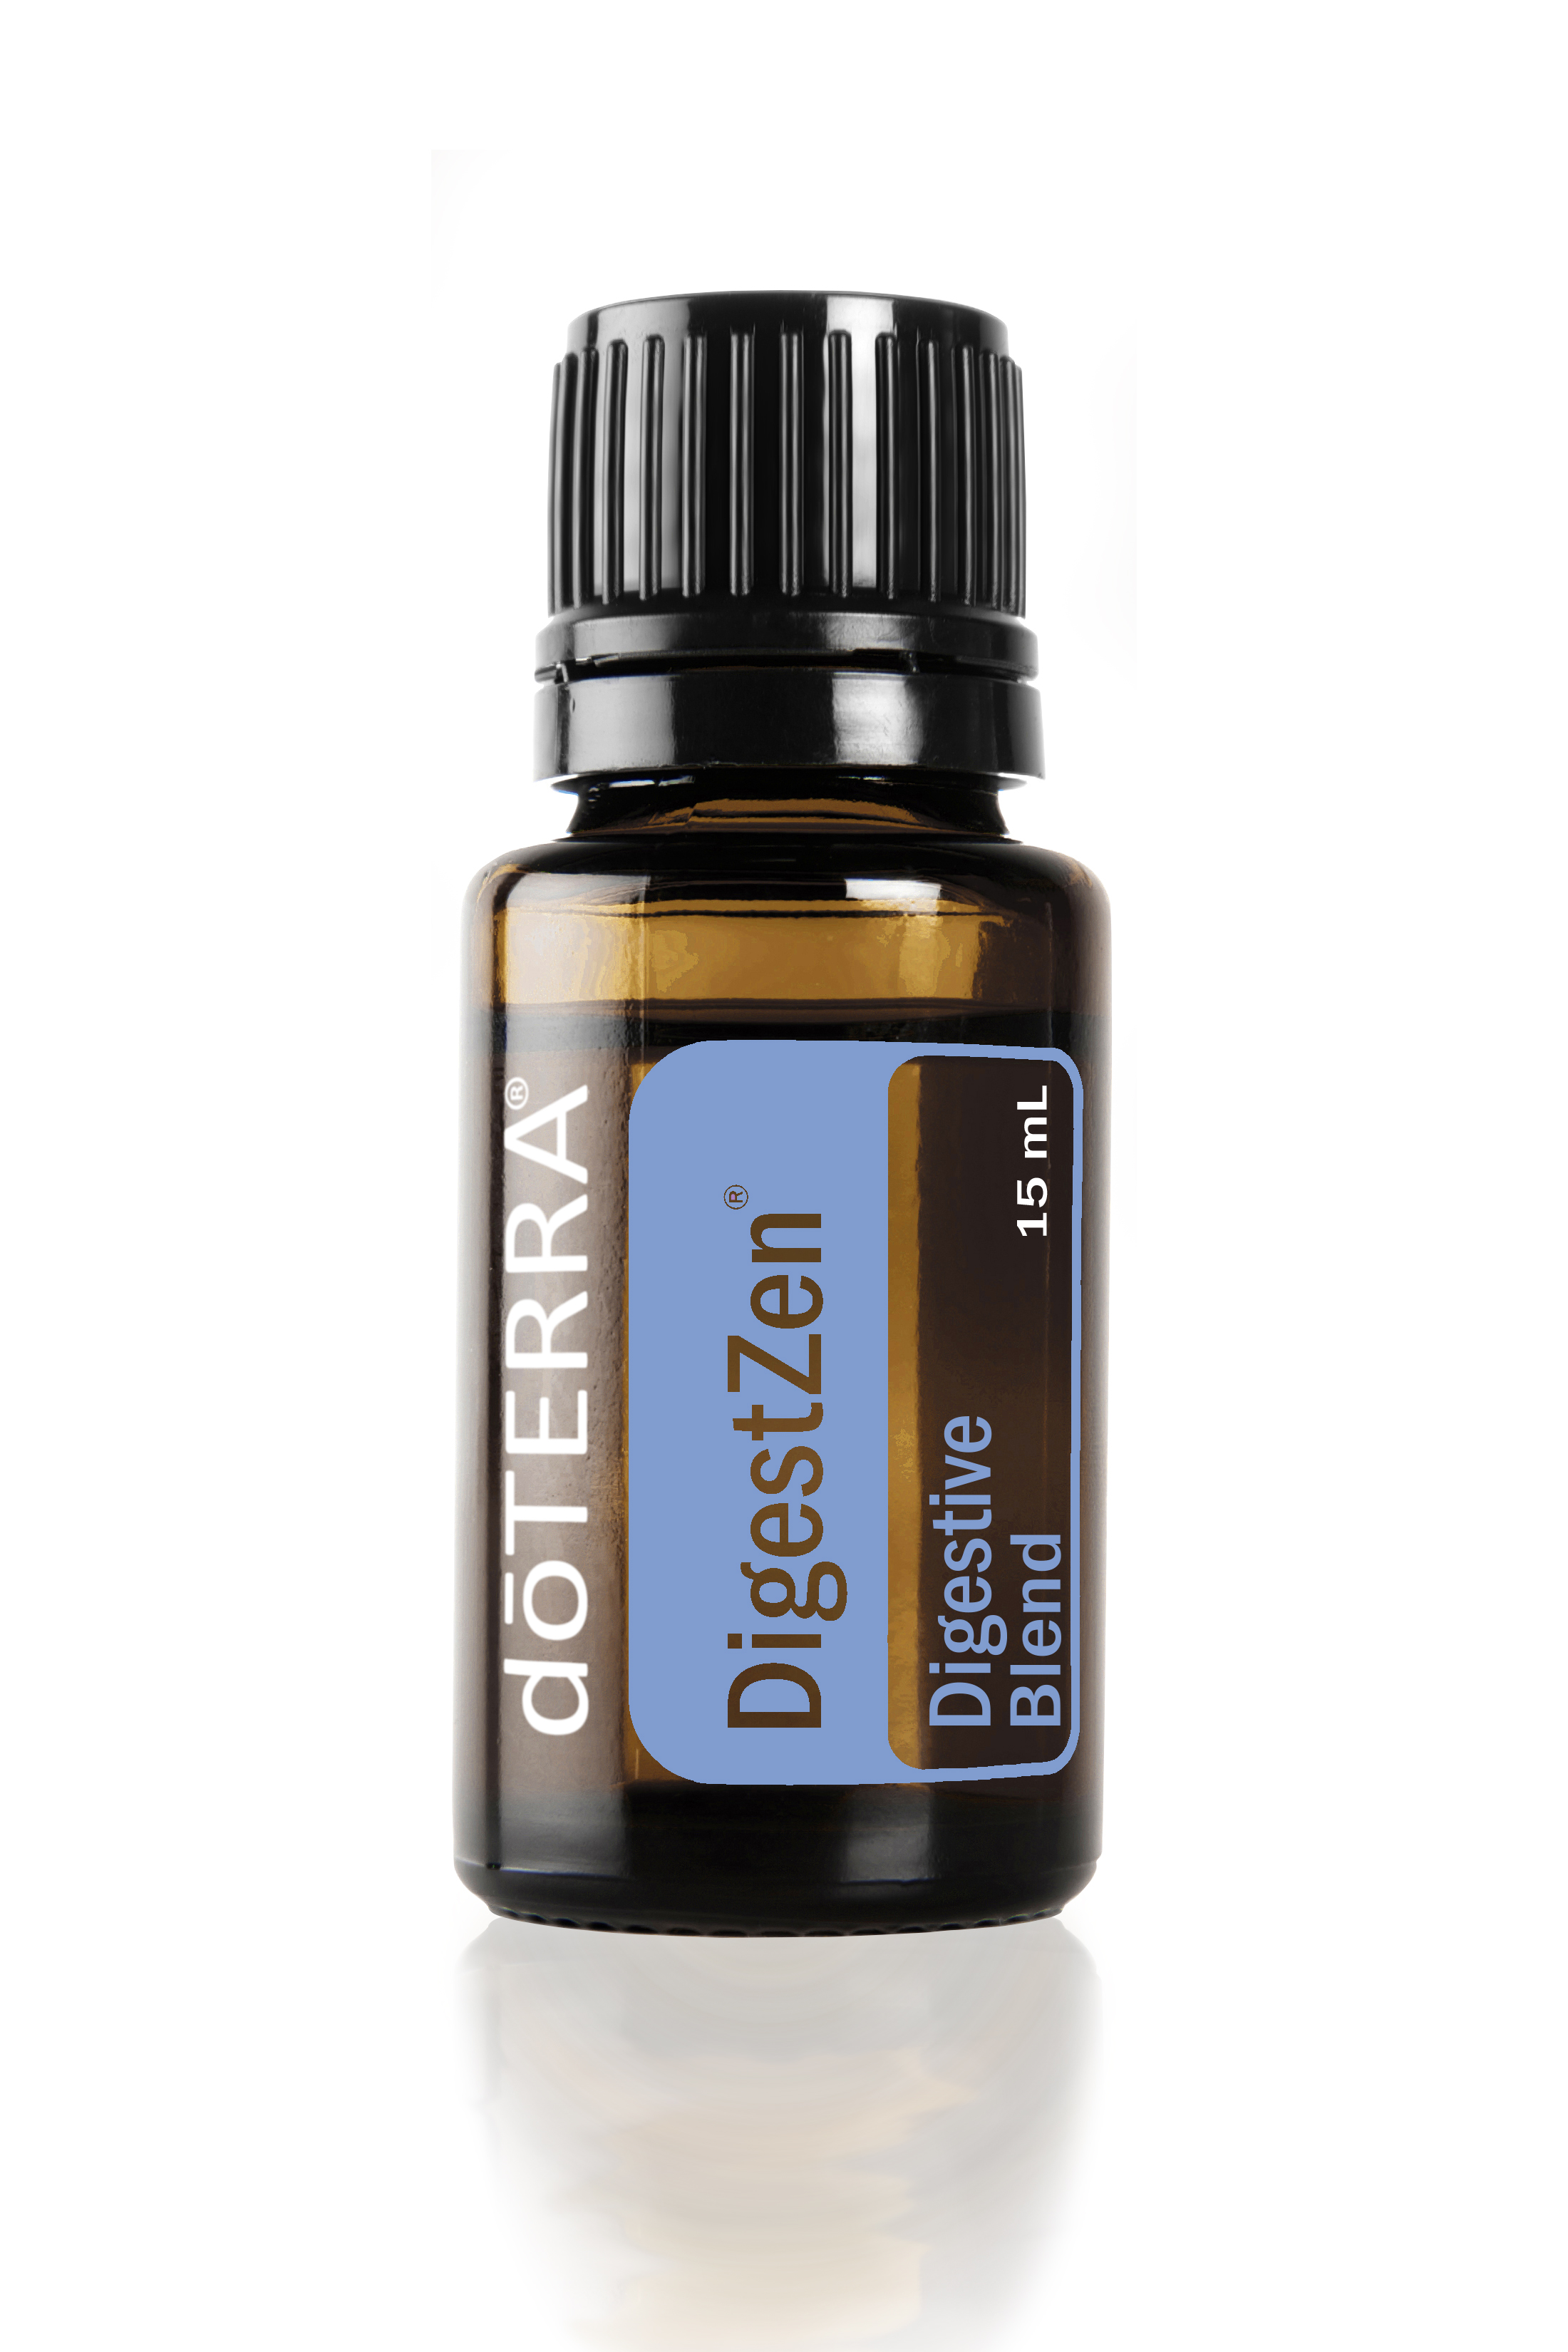 DigestZen Essential Oil - DigestZen is a wonderful companion to aid in the digestion of food, soothe occasional upset stomachs, and reduce uncomfortable gas and bloating.*